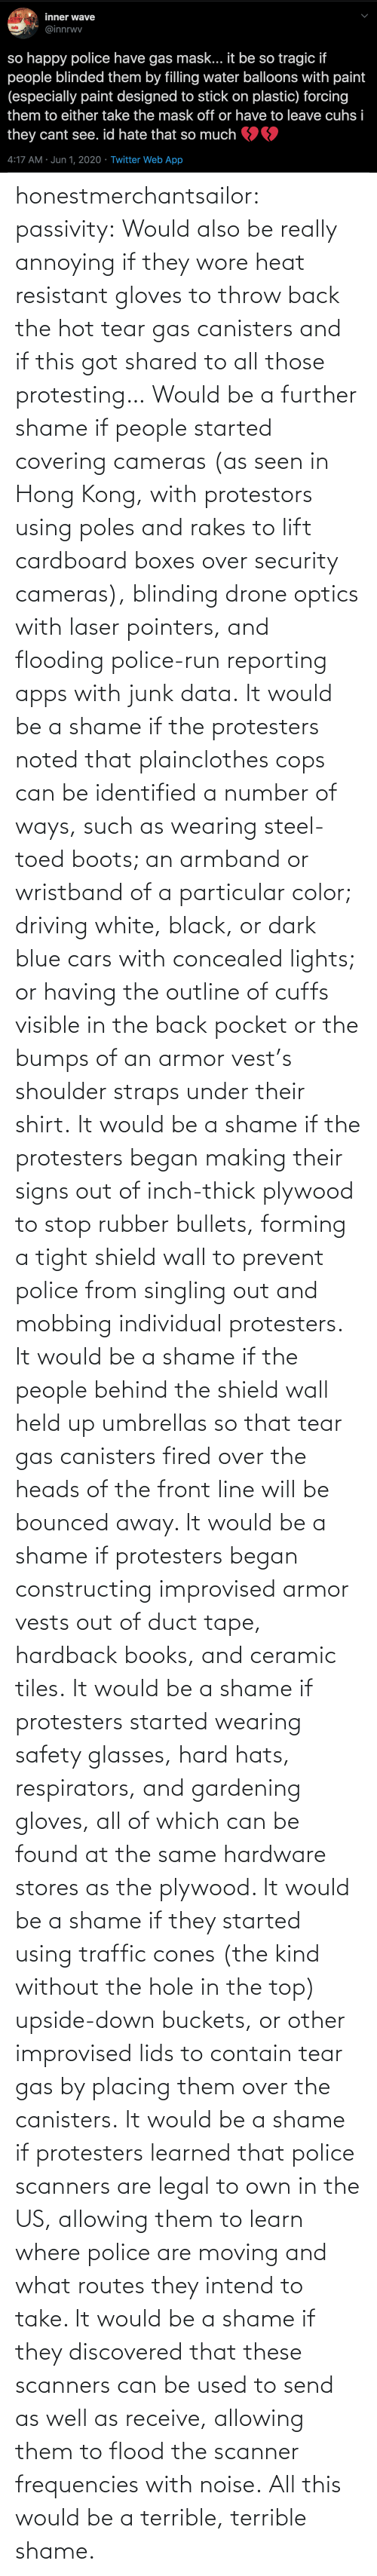 hats: honestmerchantsailor:  passivity: Would also be really annoying if they wore heat resistant gloves to throw back the hot tear gas canisters and if this got shared to all those protesting… Would be a further shame if people started covering cameras (as seen in Hong Kong, with protestors using poles and rakes to lift cardboard boxes over security cameras), blinding drone optics with laser pointers, and flooding police-run reporting apps with junk data. It would be a shame if the protesters noted that plainclothes cops can be identified a number of ways, such as wearing steel-toed boots; an armband or wristband of a particular color; driving white, black, or dark blue cars with concealed lights; or having the outline of cuffs visible in the back pocket or the bumps of an armor vest's shoulder straps under their shirt. It would be a shame if the protesters began making their signs out of inch-thick plywood to stop rubber bullets, forming a tight shield wall to prevent police from singling out and mobbing individual protesters. It would be a shame if the people behind the shield wall held up umbrellas so that tear gas canisters fired over the heads of the front line will be bounced away. It would be a shame if protesters began constructing improvised armor vests out of duct tape, hardback books, and ceramic tiles. It would be a shame if protesters started wearing safety glasses, hard hats, respirators, and gardening gloves, all of which can be found at the same hardware stores as the plywood. It would be a shame if they started using traffic cones (the kind without the hole in the top) upside-down buckets, or other improvised lids to contain tear gas by placing them over the canisters. It would be a shame if protesters learned that police scanners are legal to own in the US, allowing them to learn where police are moving and what routes they intend to take. It would be a shame if they discovered that these scanners can be used to send as well as receive, allowing them to flood the scanner frequencies with noise. All this would be a terrible, terrible shame.